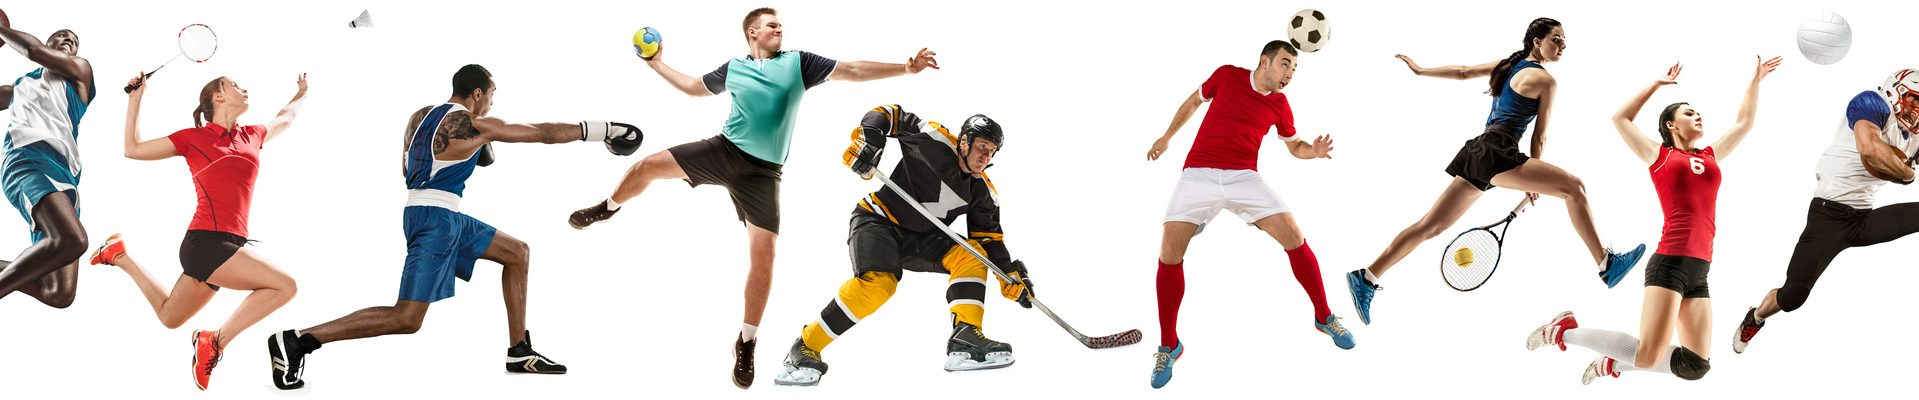 Creative collage of childrens and adults in sport